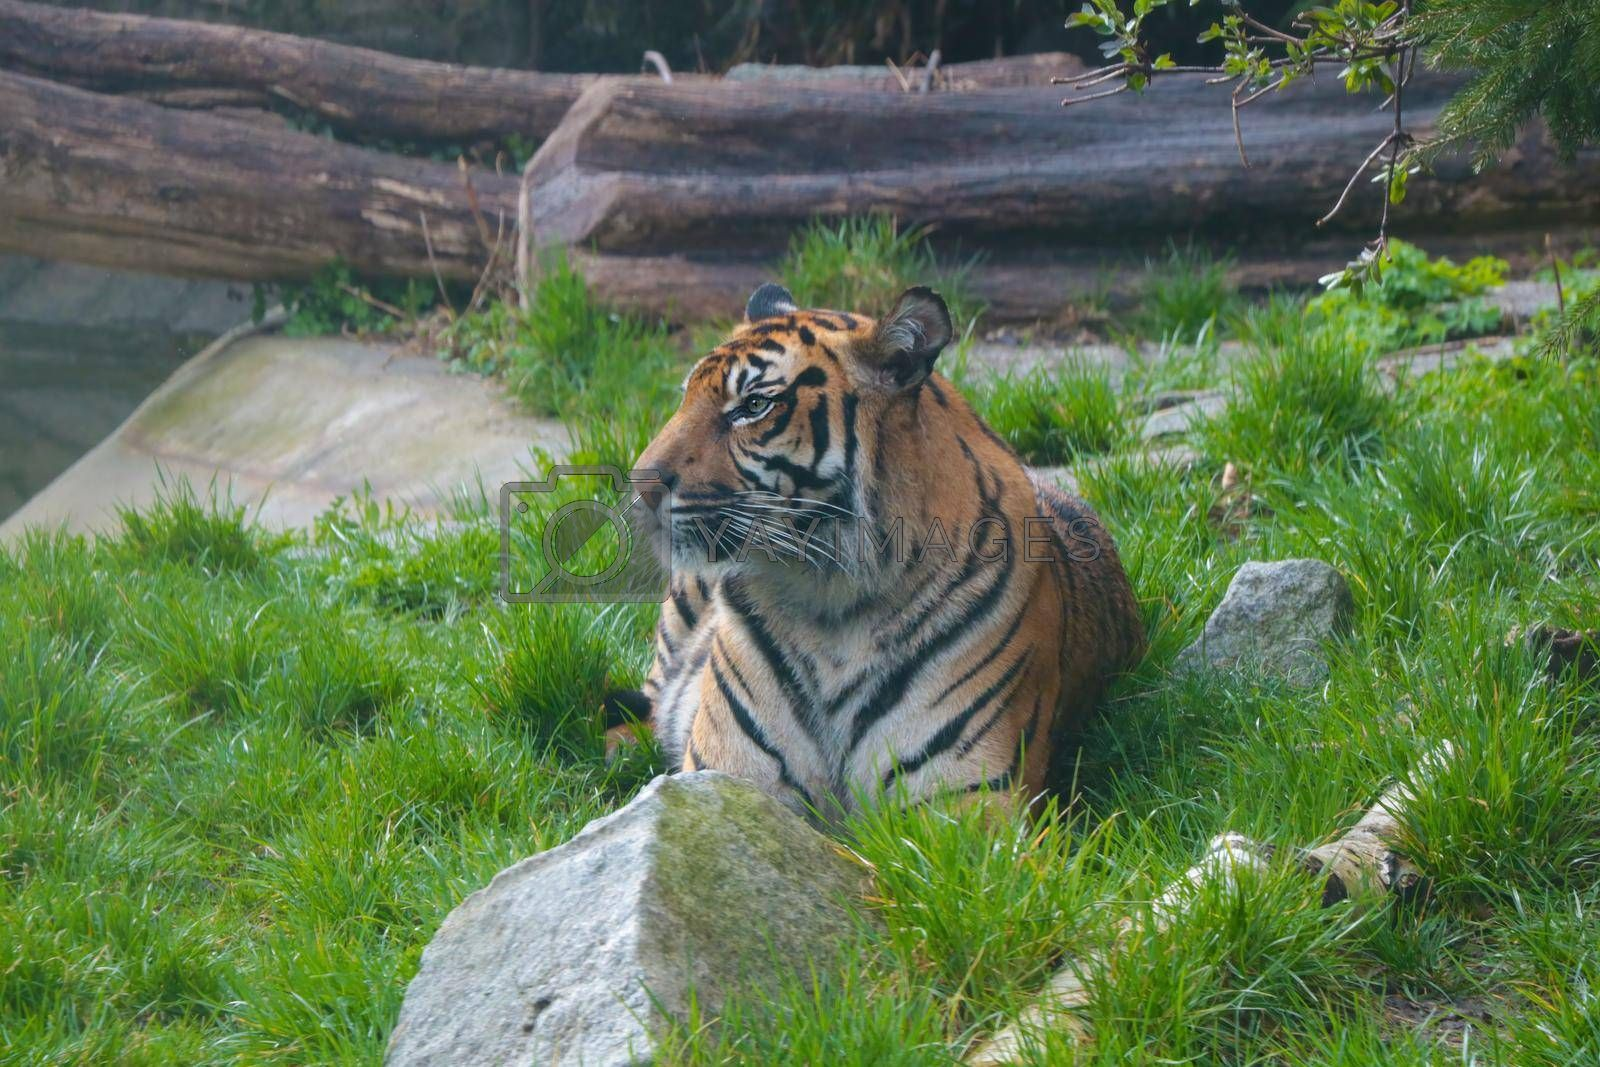 Royalty free image of Selective focus. A young tiger lies in the grass and looks attentively. by kip02kas